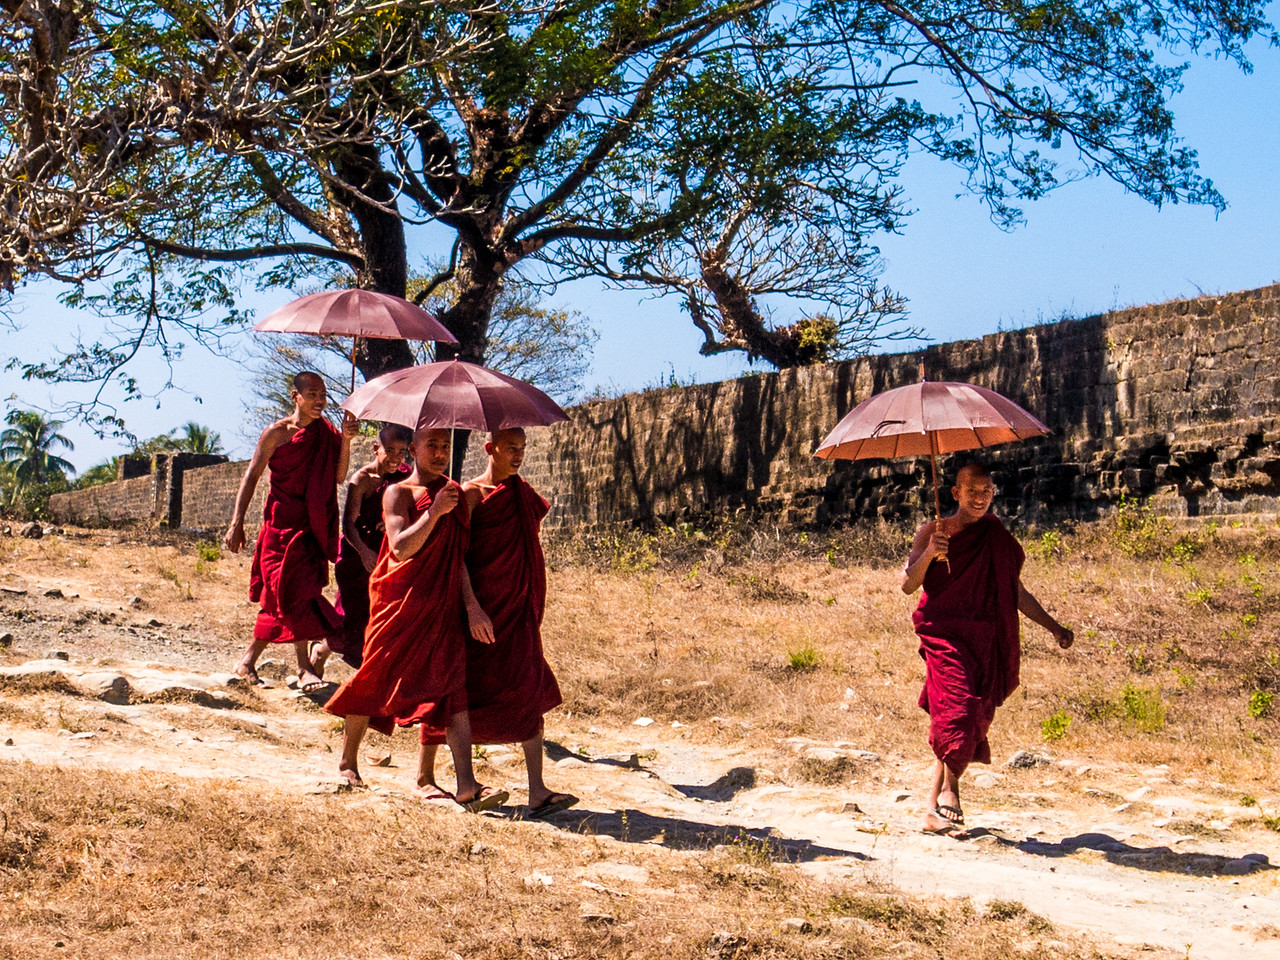 Buddhist Monks Walking With Umbrellas Outside a Pagoda in Mruak U, Myanmar